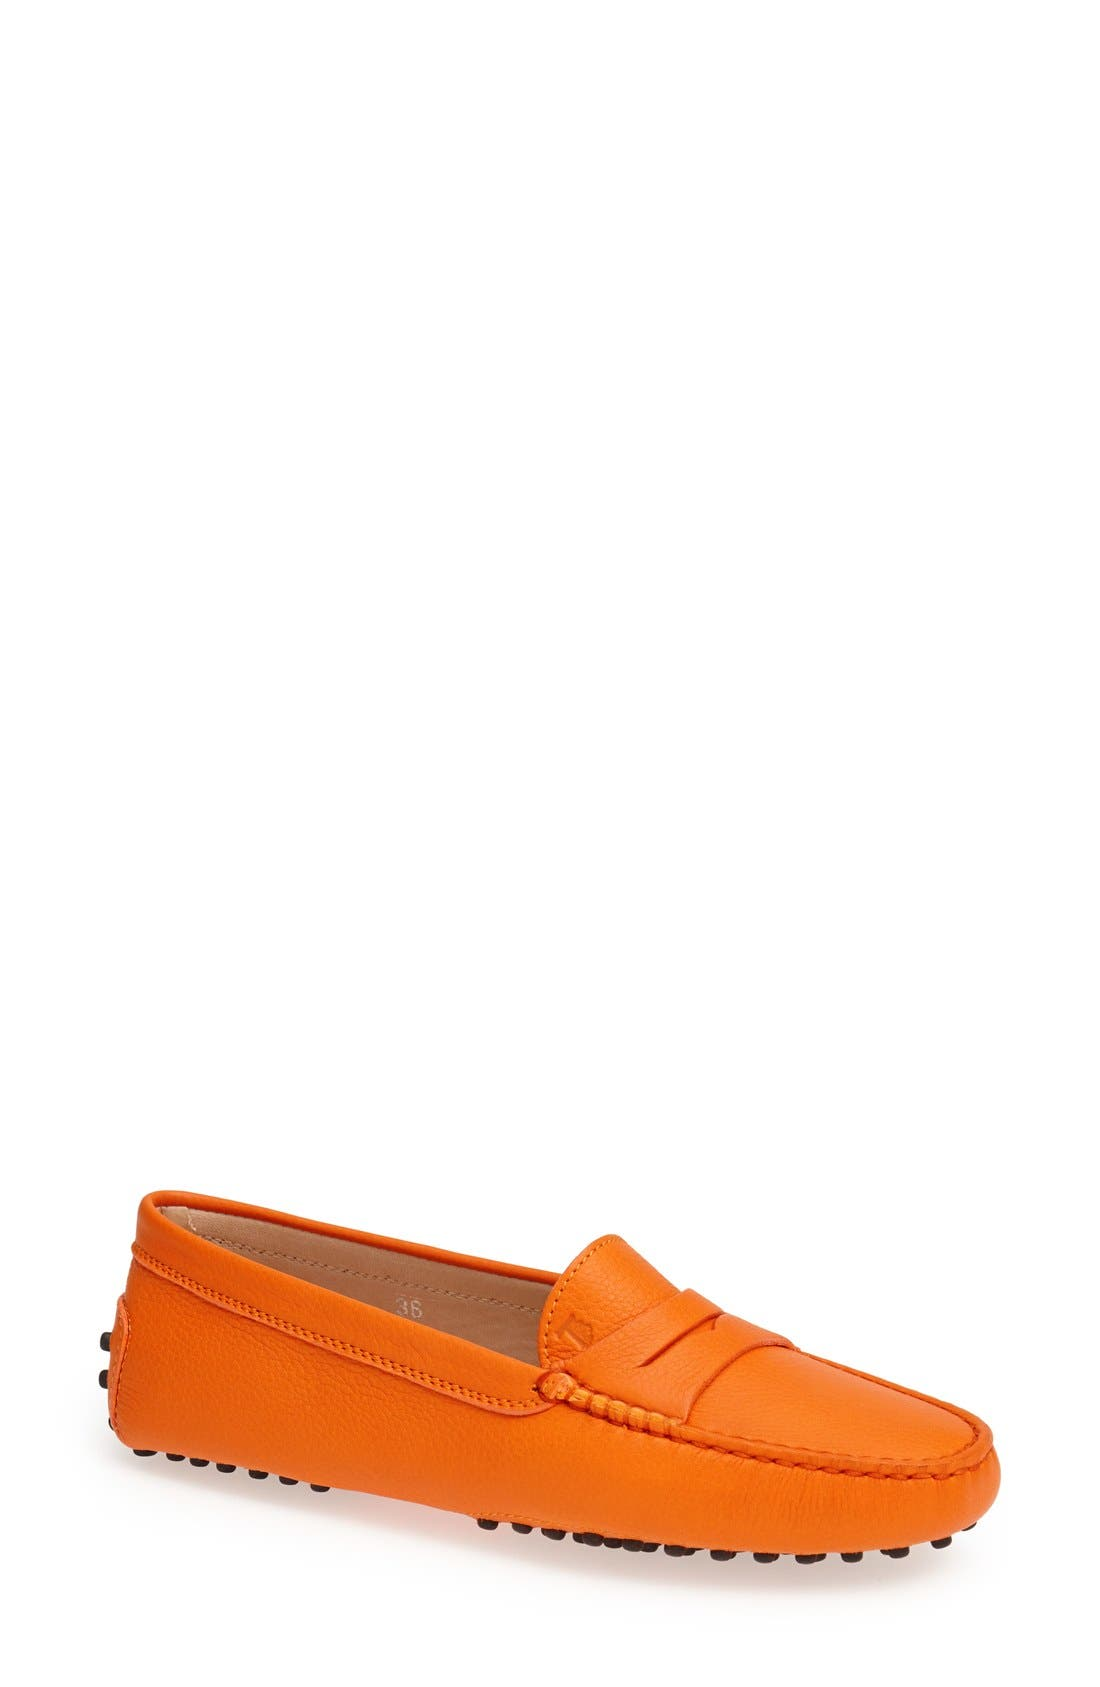 TOD'S, 'Gommini' Driving Moccasin, Main thumbnail 1, color, 800